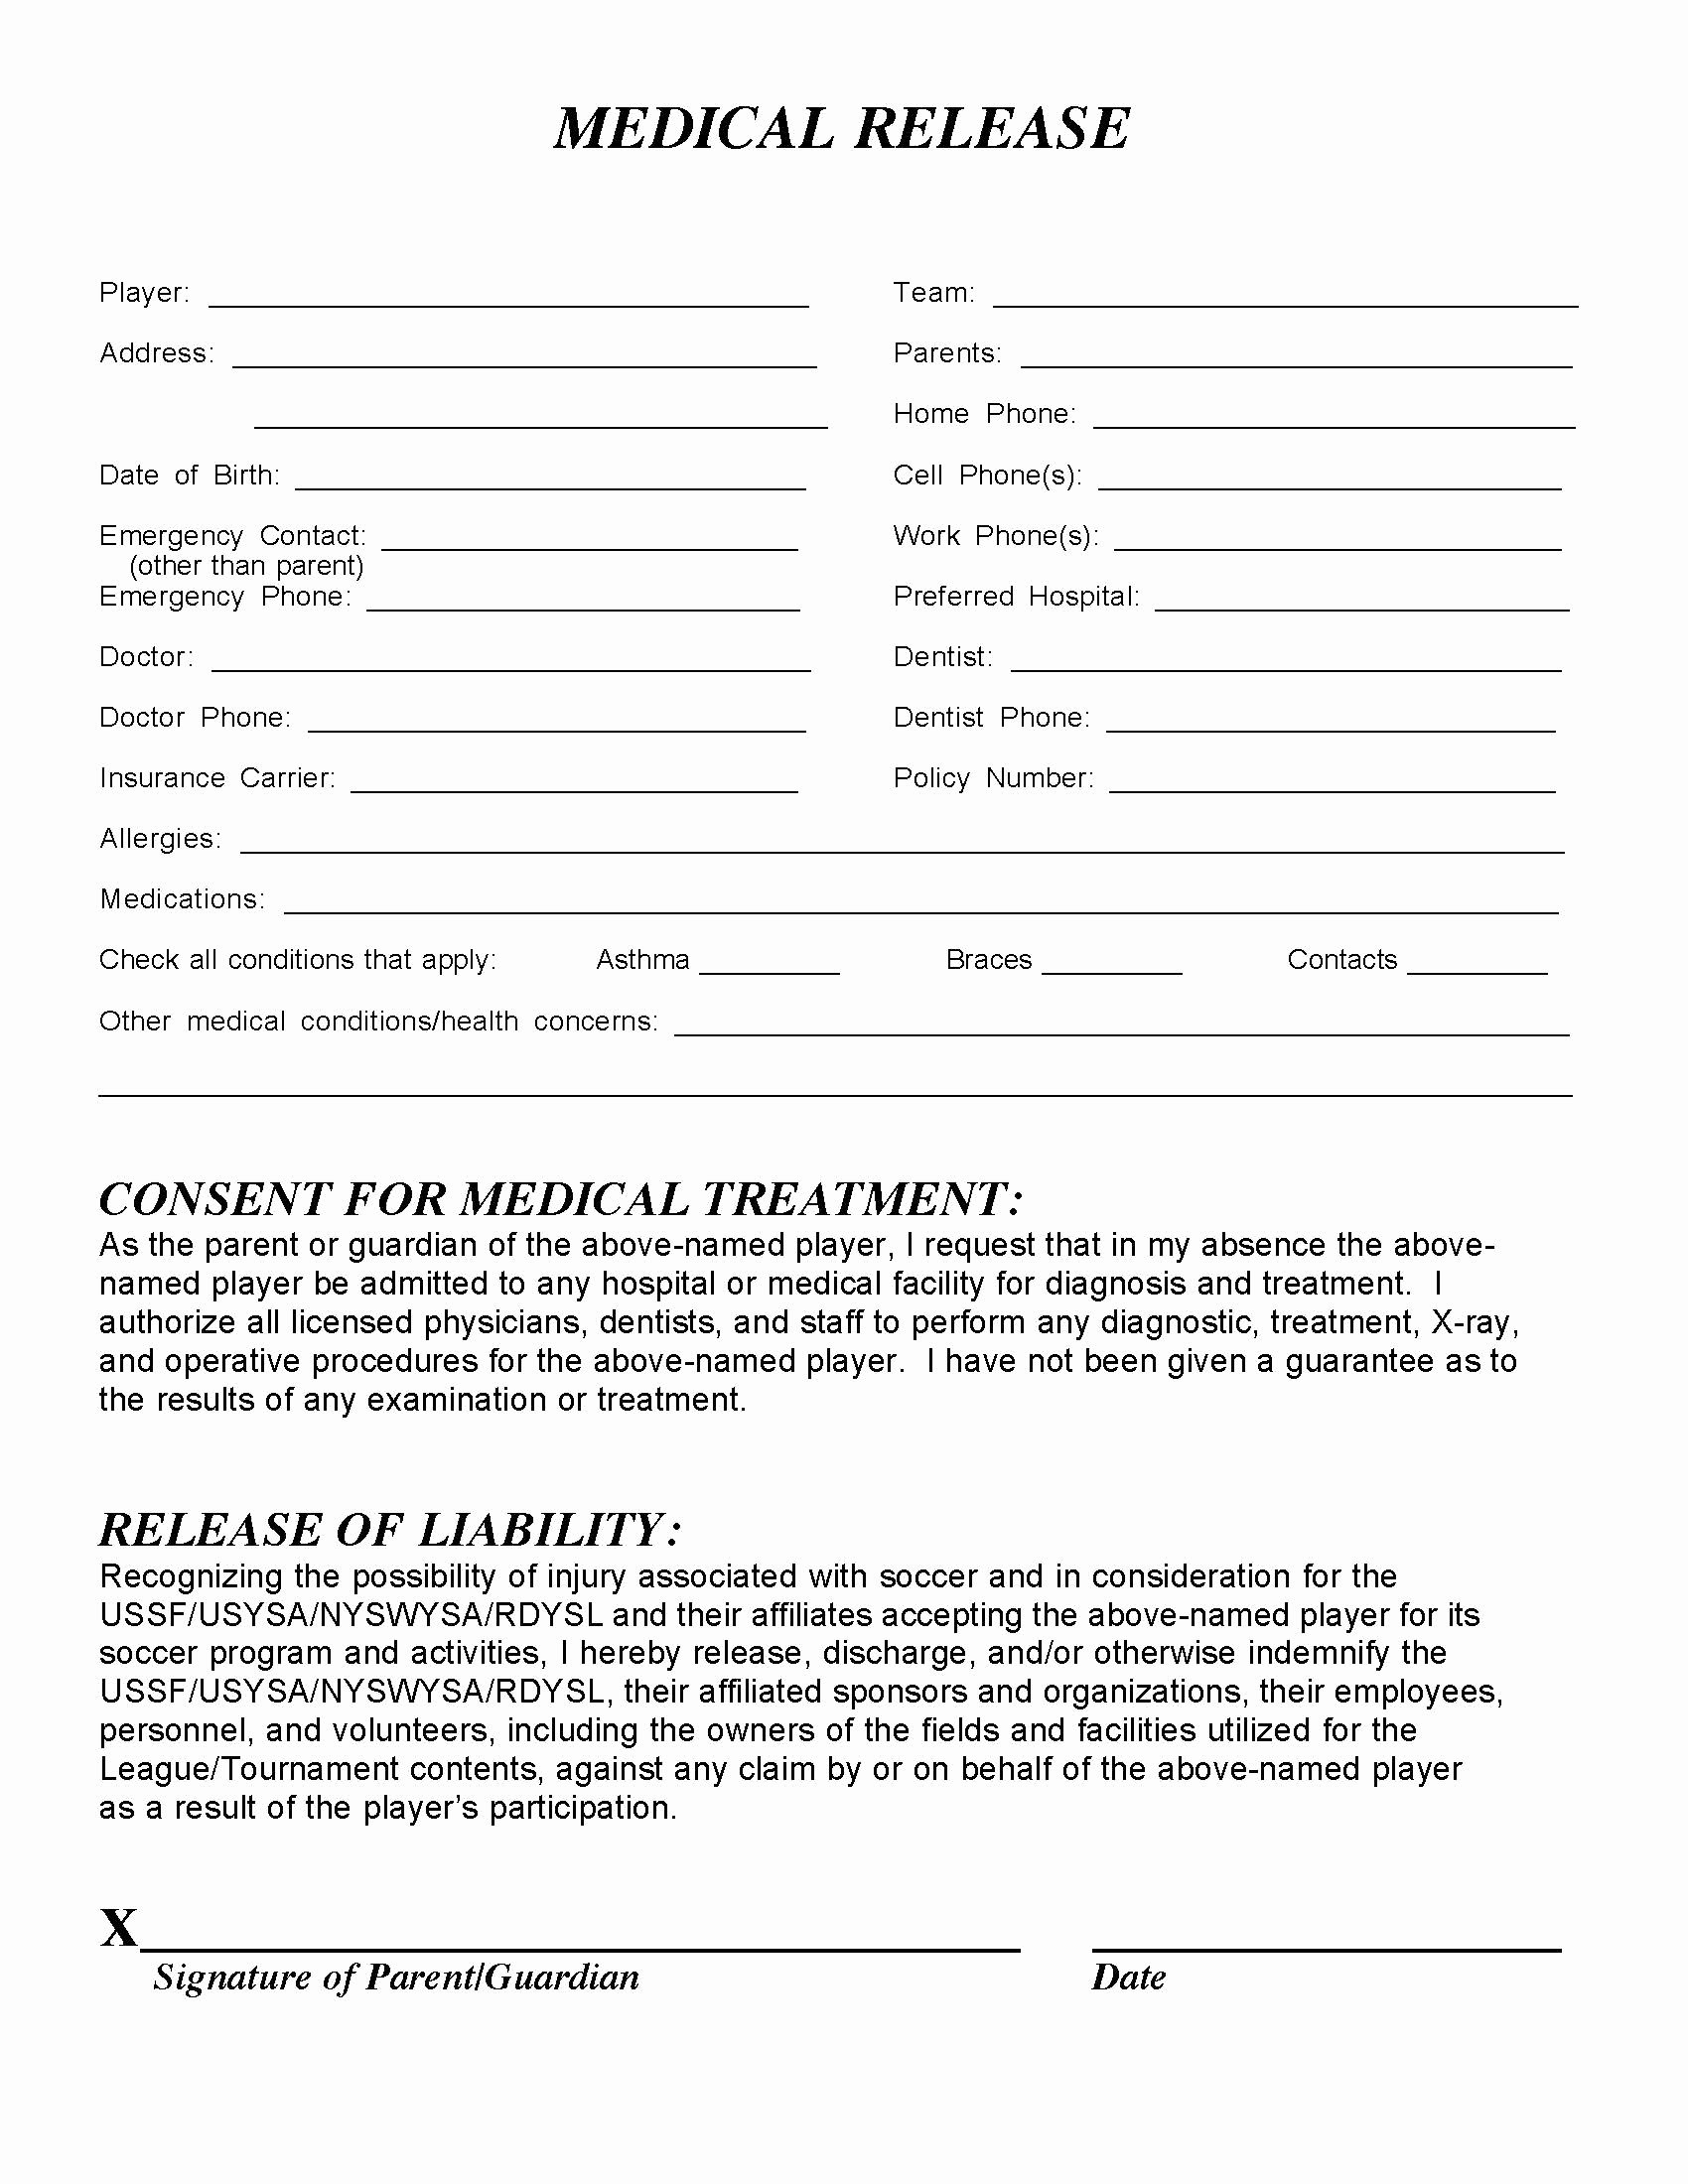 Template for Medical Release form Elegant Medical Release form – Templates Free Printable